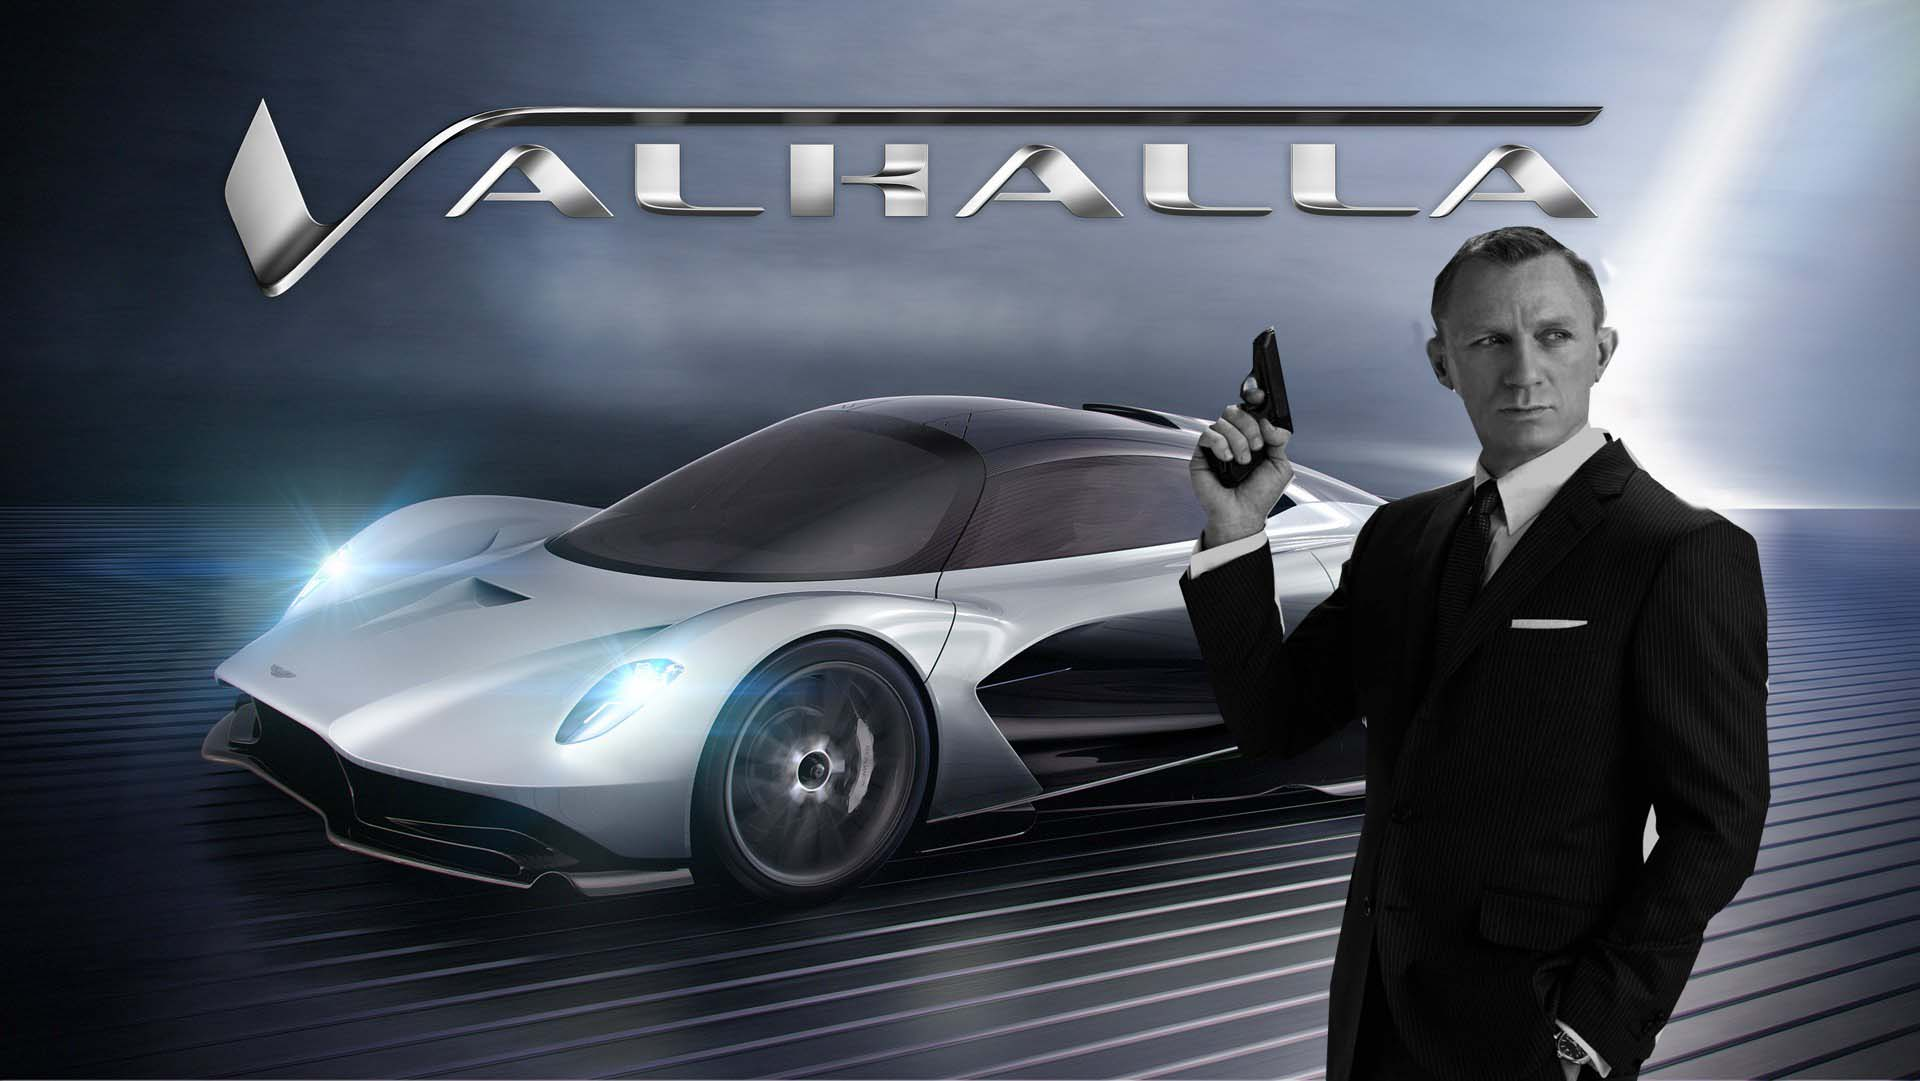 fb5fec0b-aston-martin-valhalla-name-confirmed-1 copy